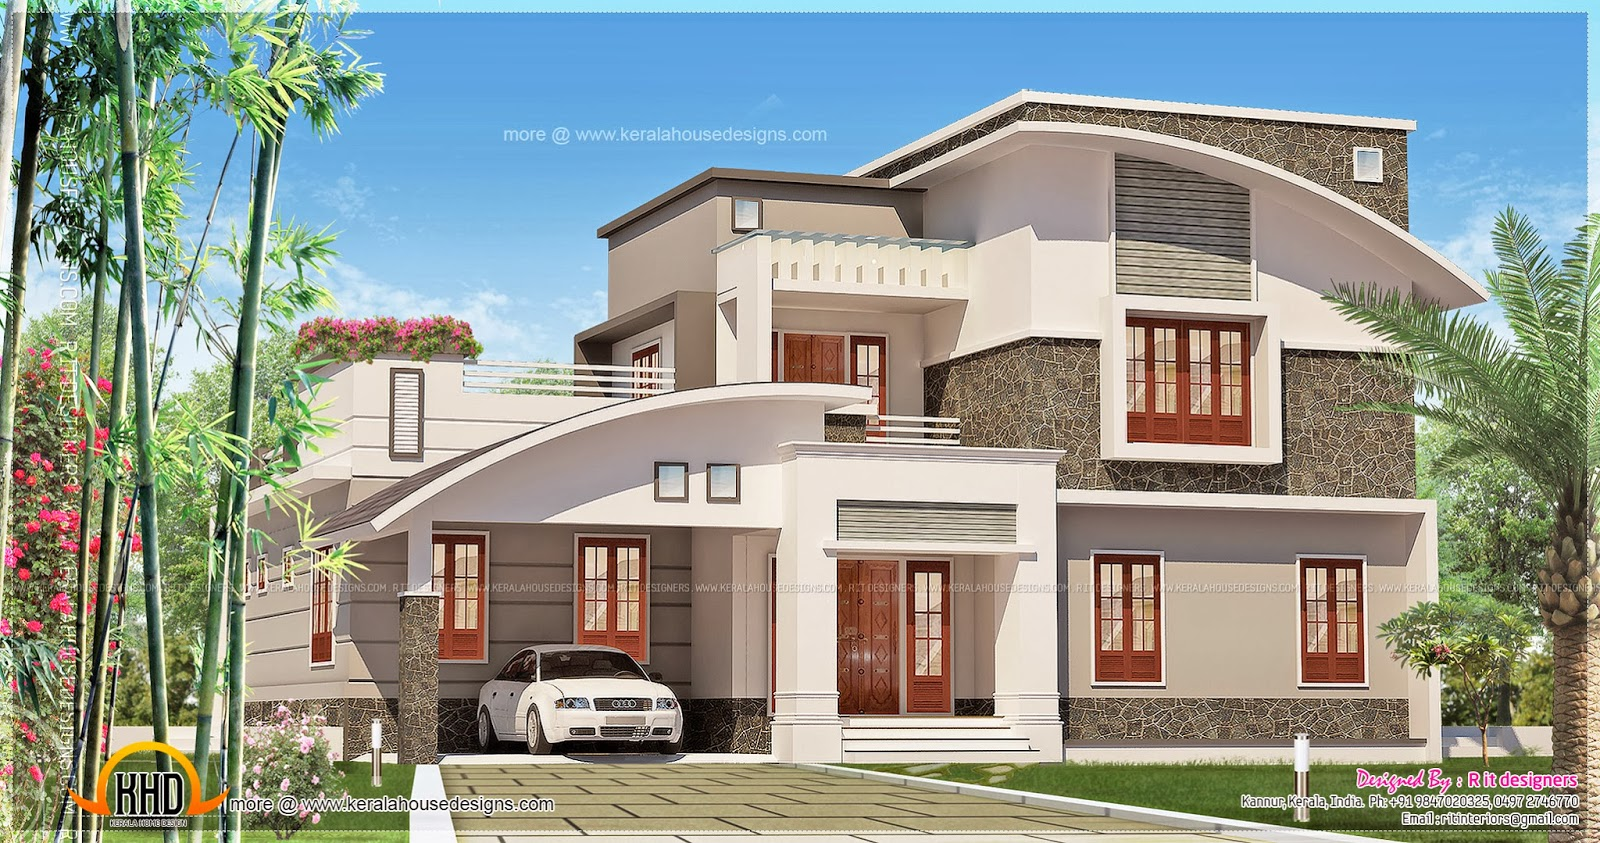 3 bedroom contemporary mix house exterior kerala home for Exterior house designs indian style